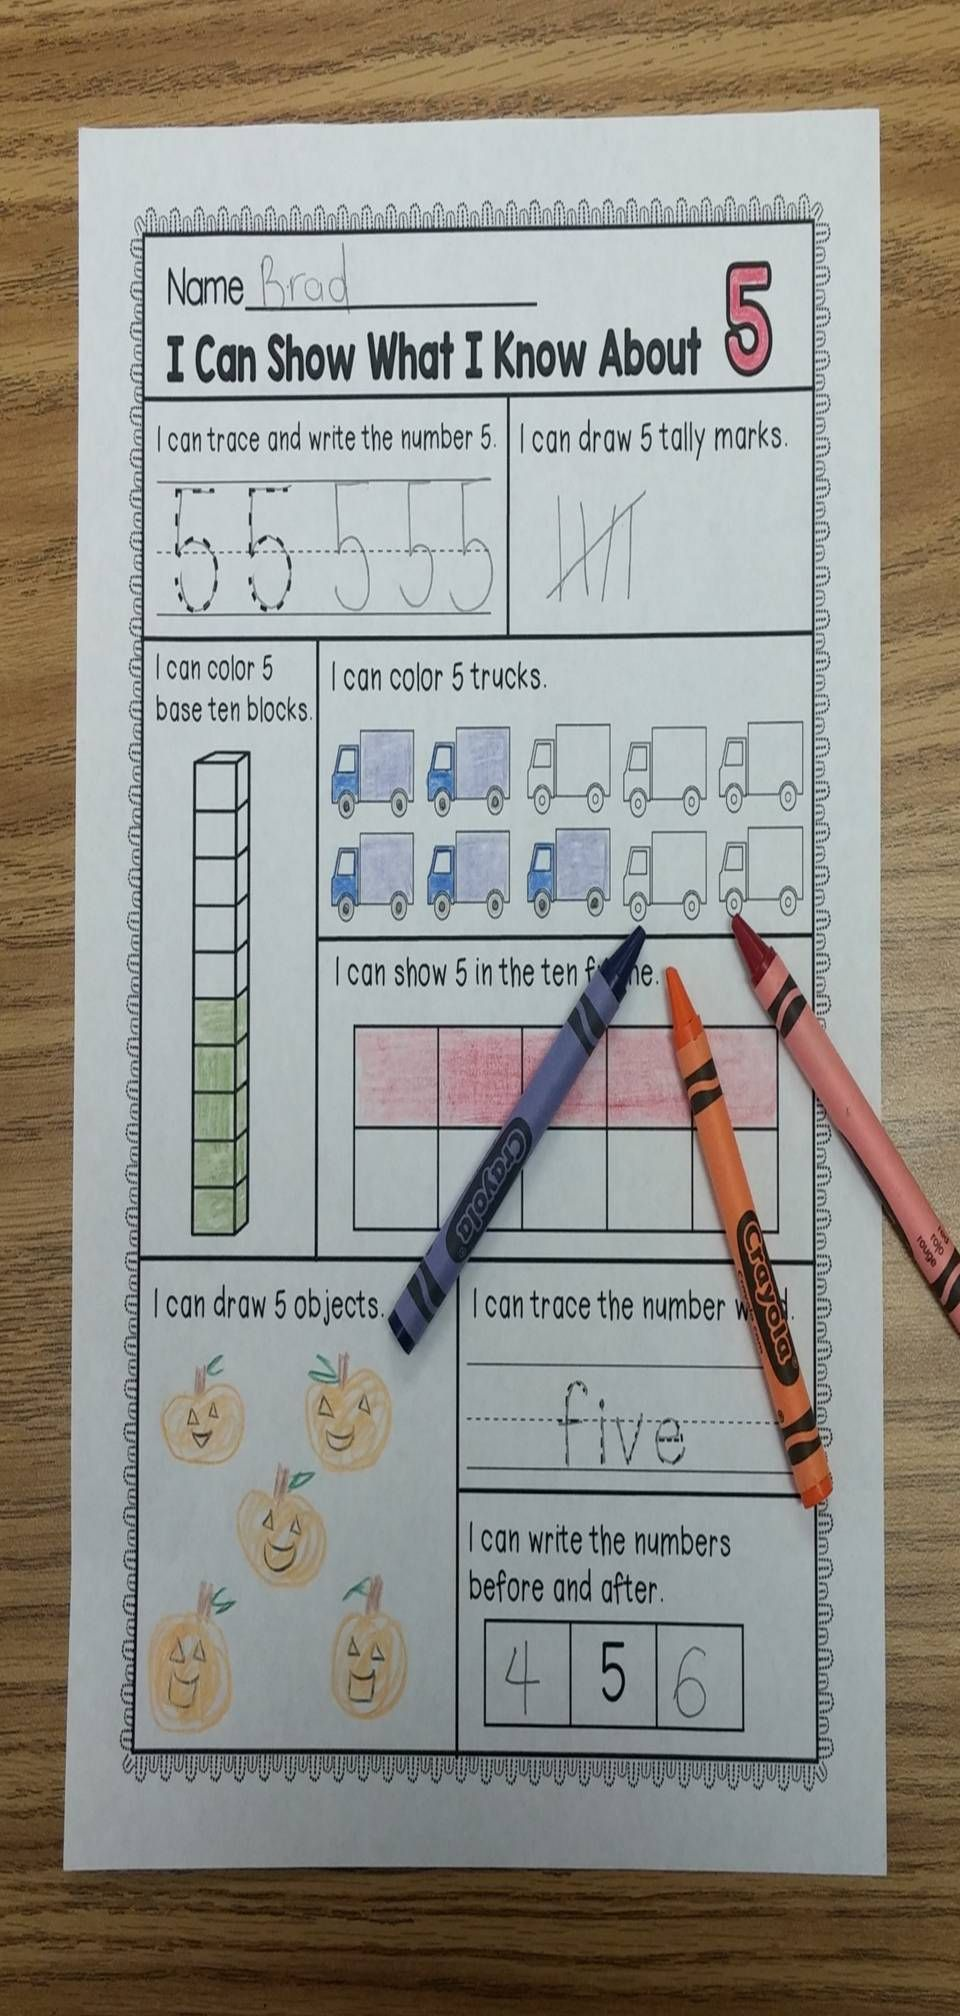 Numbers 1-10 | Math, Base ten blocks and Tally marks